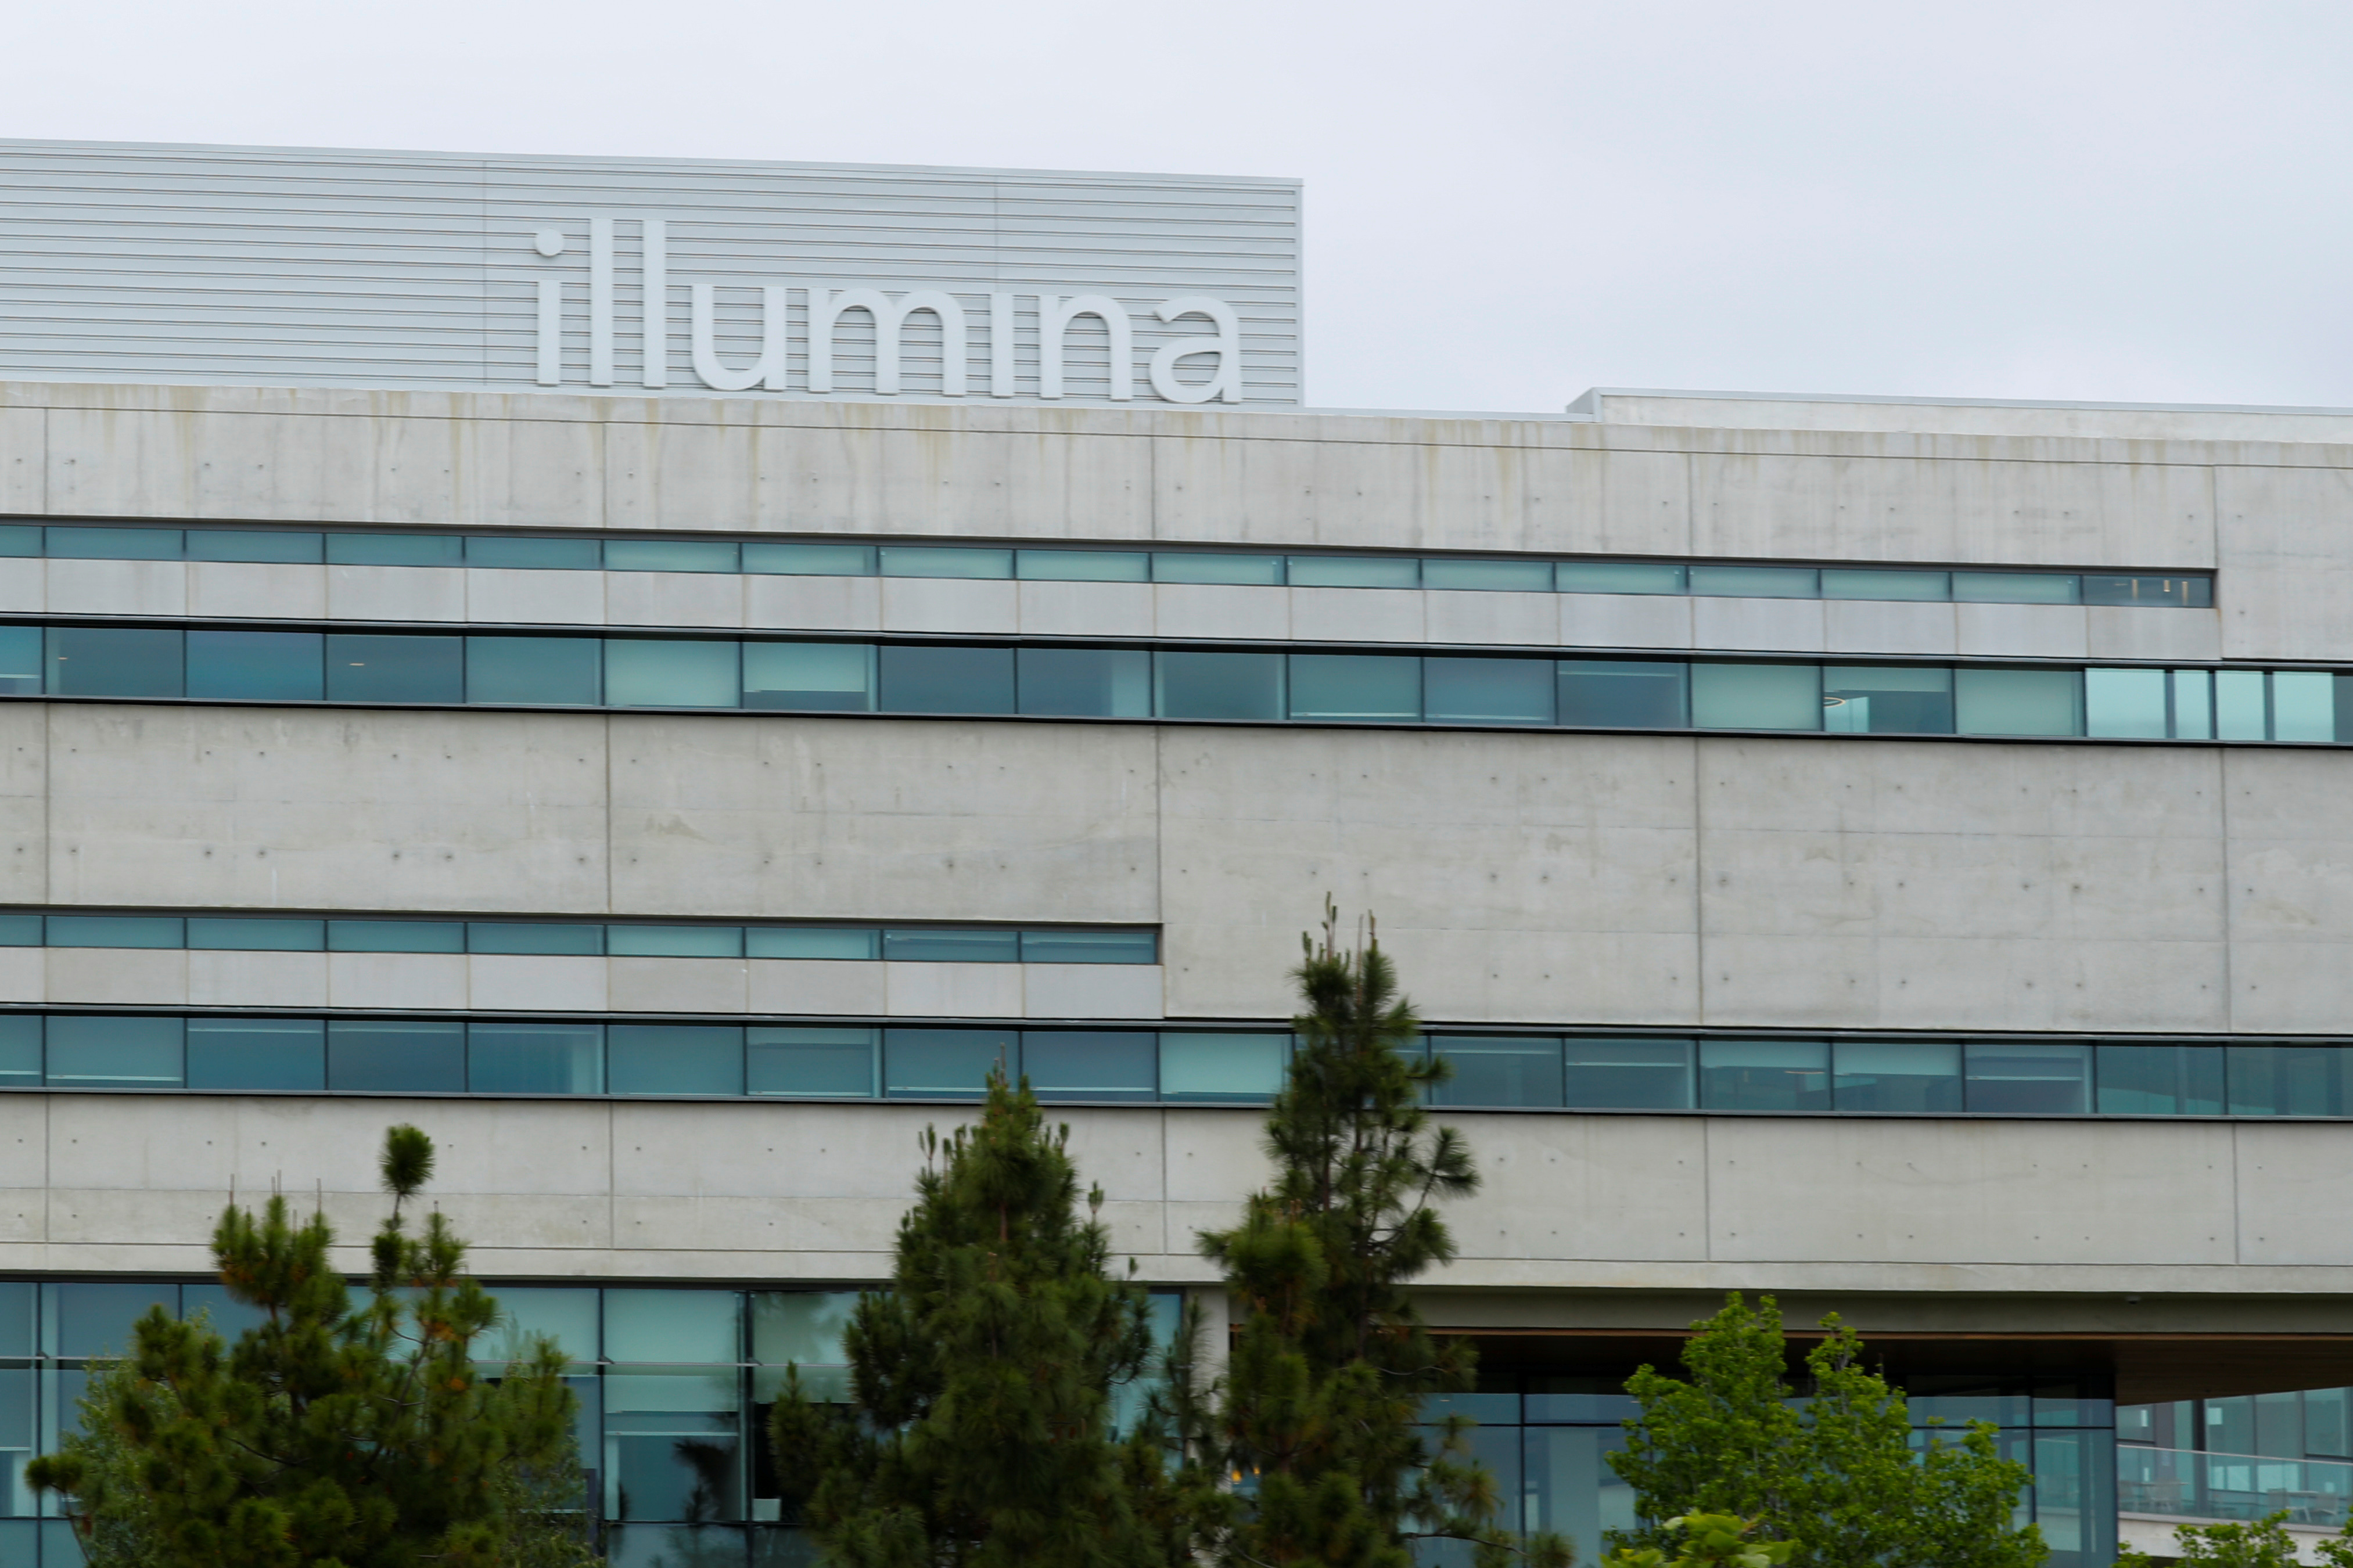 A new office building housing genetic research company Illumina is shown in San Diego, California, U.S., May 30, 2018. REUTERS/Mike Blake